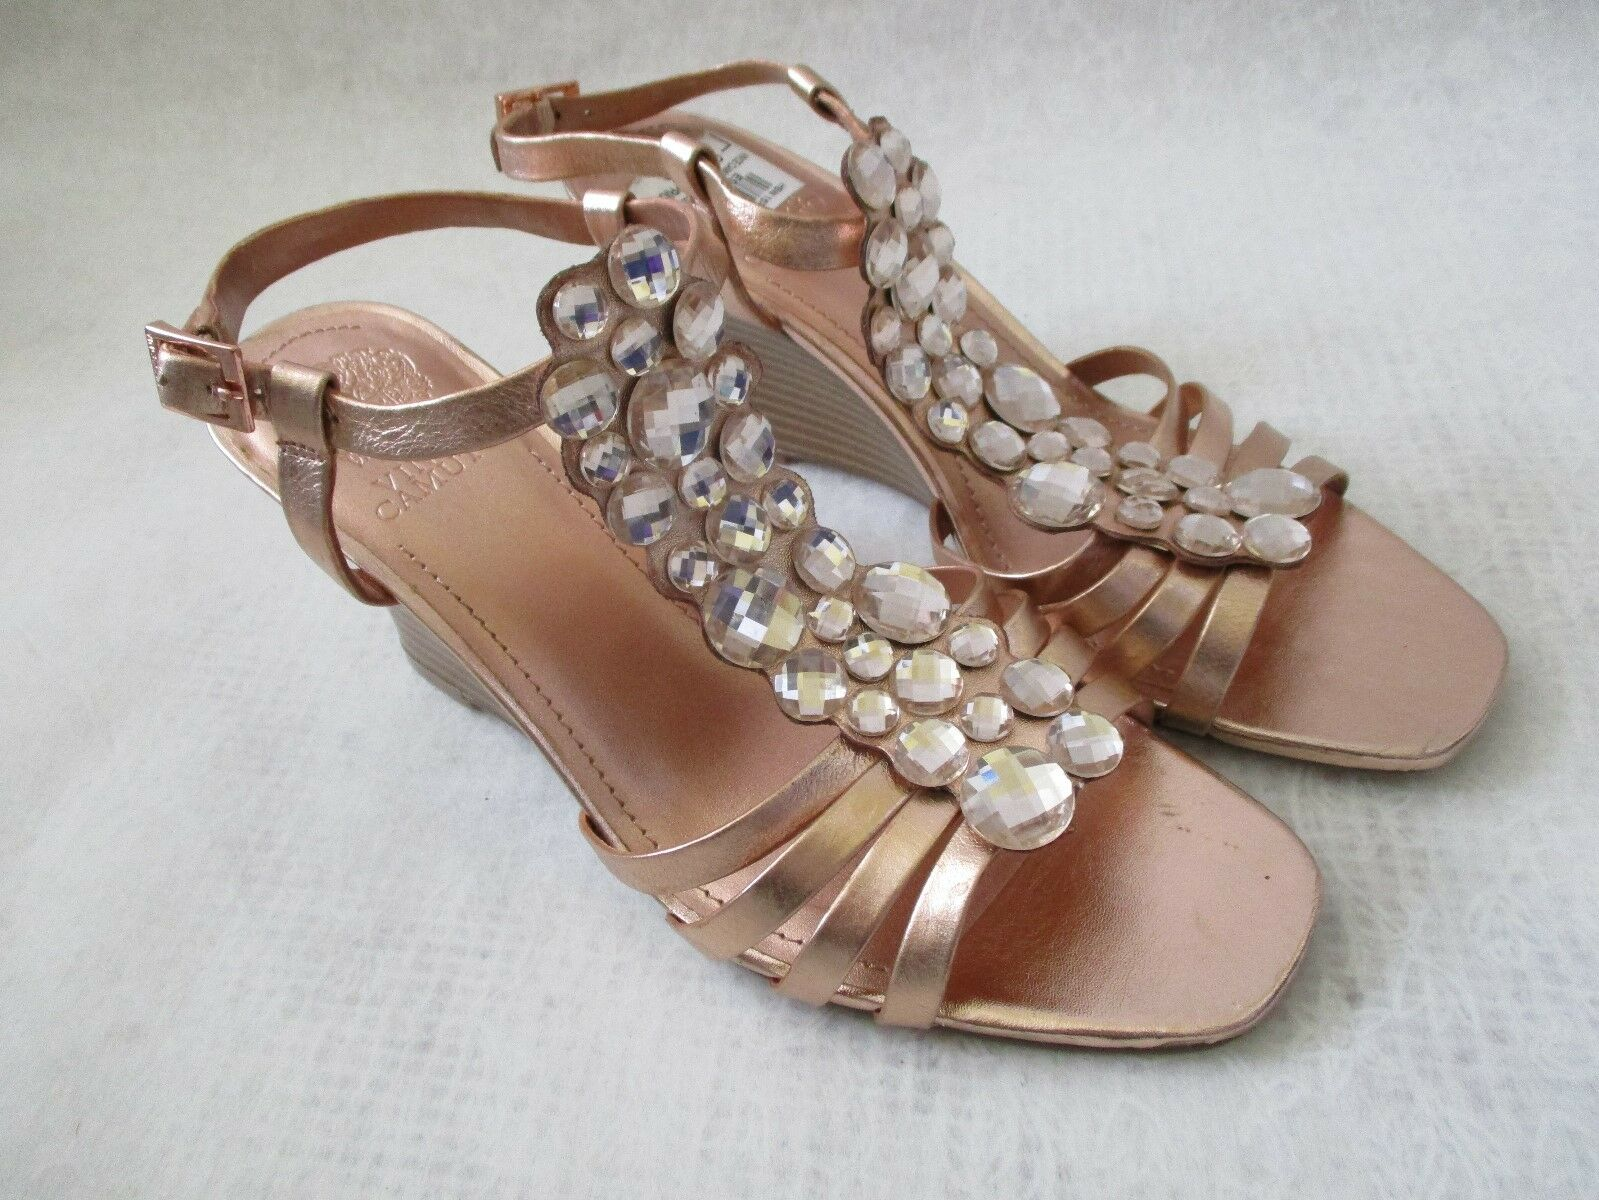 VINCE CAMUTO LEATHER pink gold JEWELED WEDGE SHOES SIZE 6 1 2 M - NEW